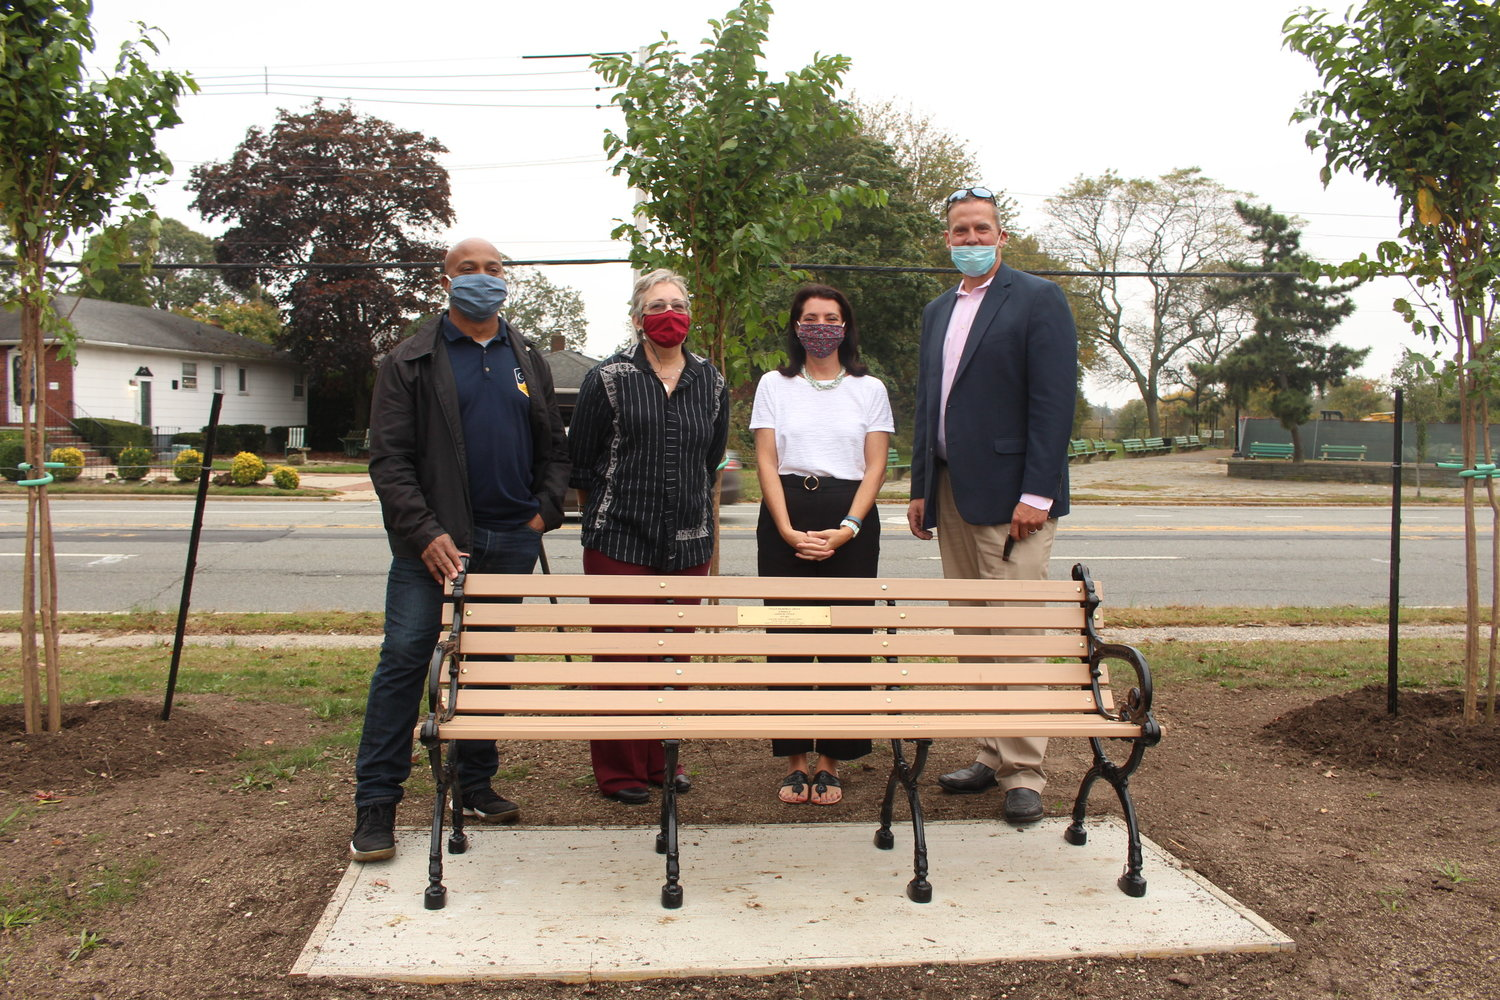 Baldwin Civic Association President Darien Ward, far left, joined civic association member Sara Hill, Jason Vitale's widow, Jennifer Vitale, and Baldwin Chamber of Commerce President Erik Mahler at the ceremony to dedicate Vitale Grove on Oct. 22.